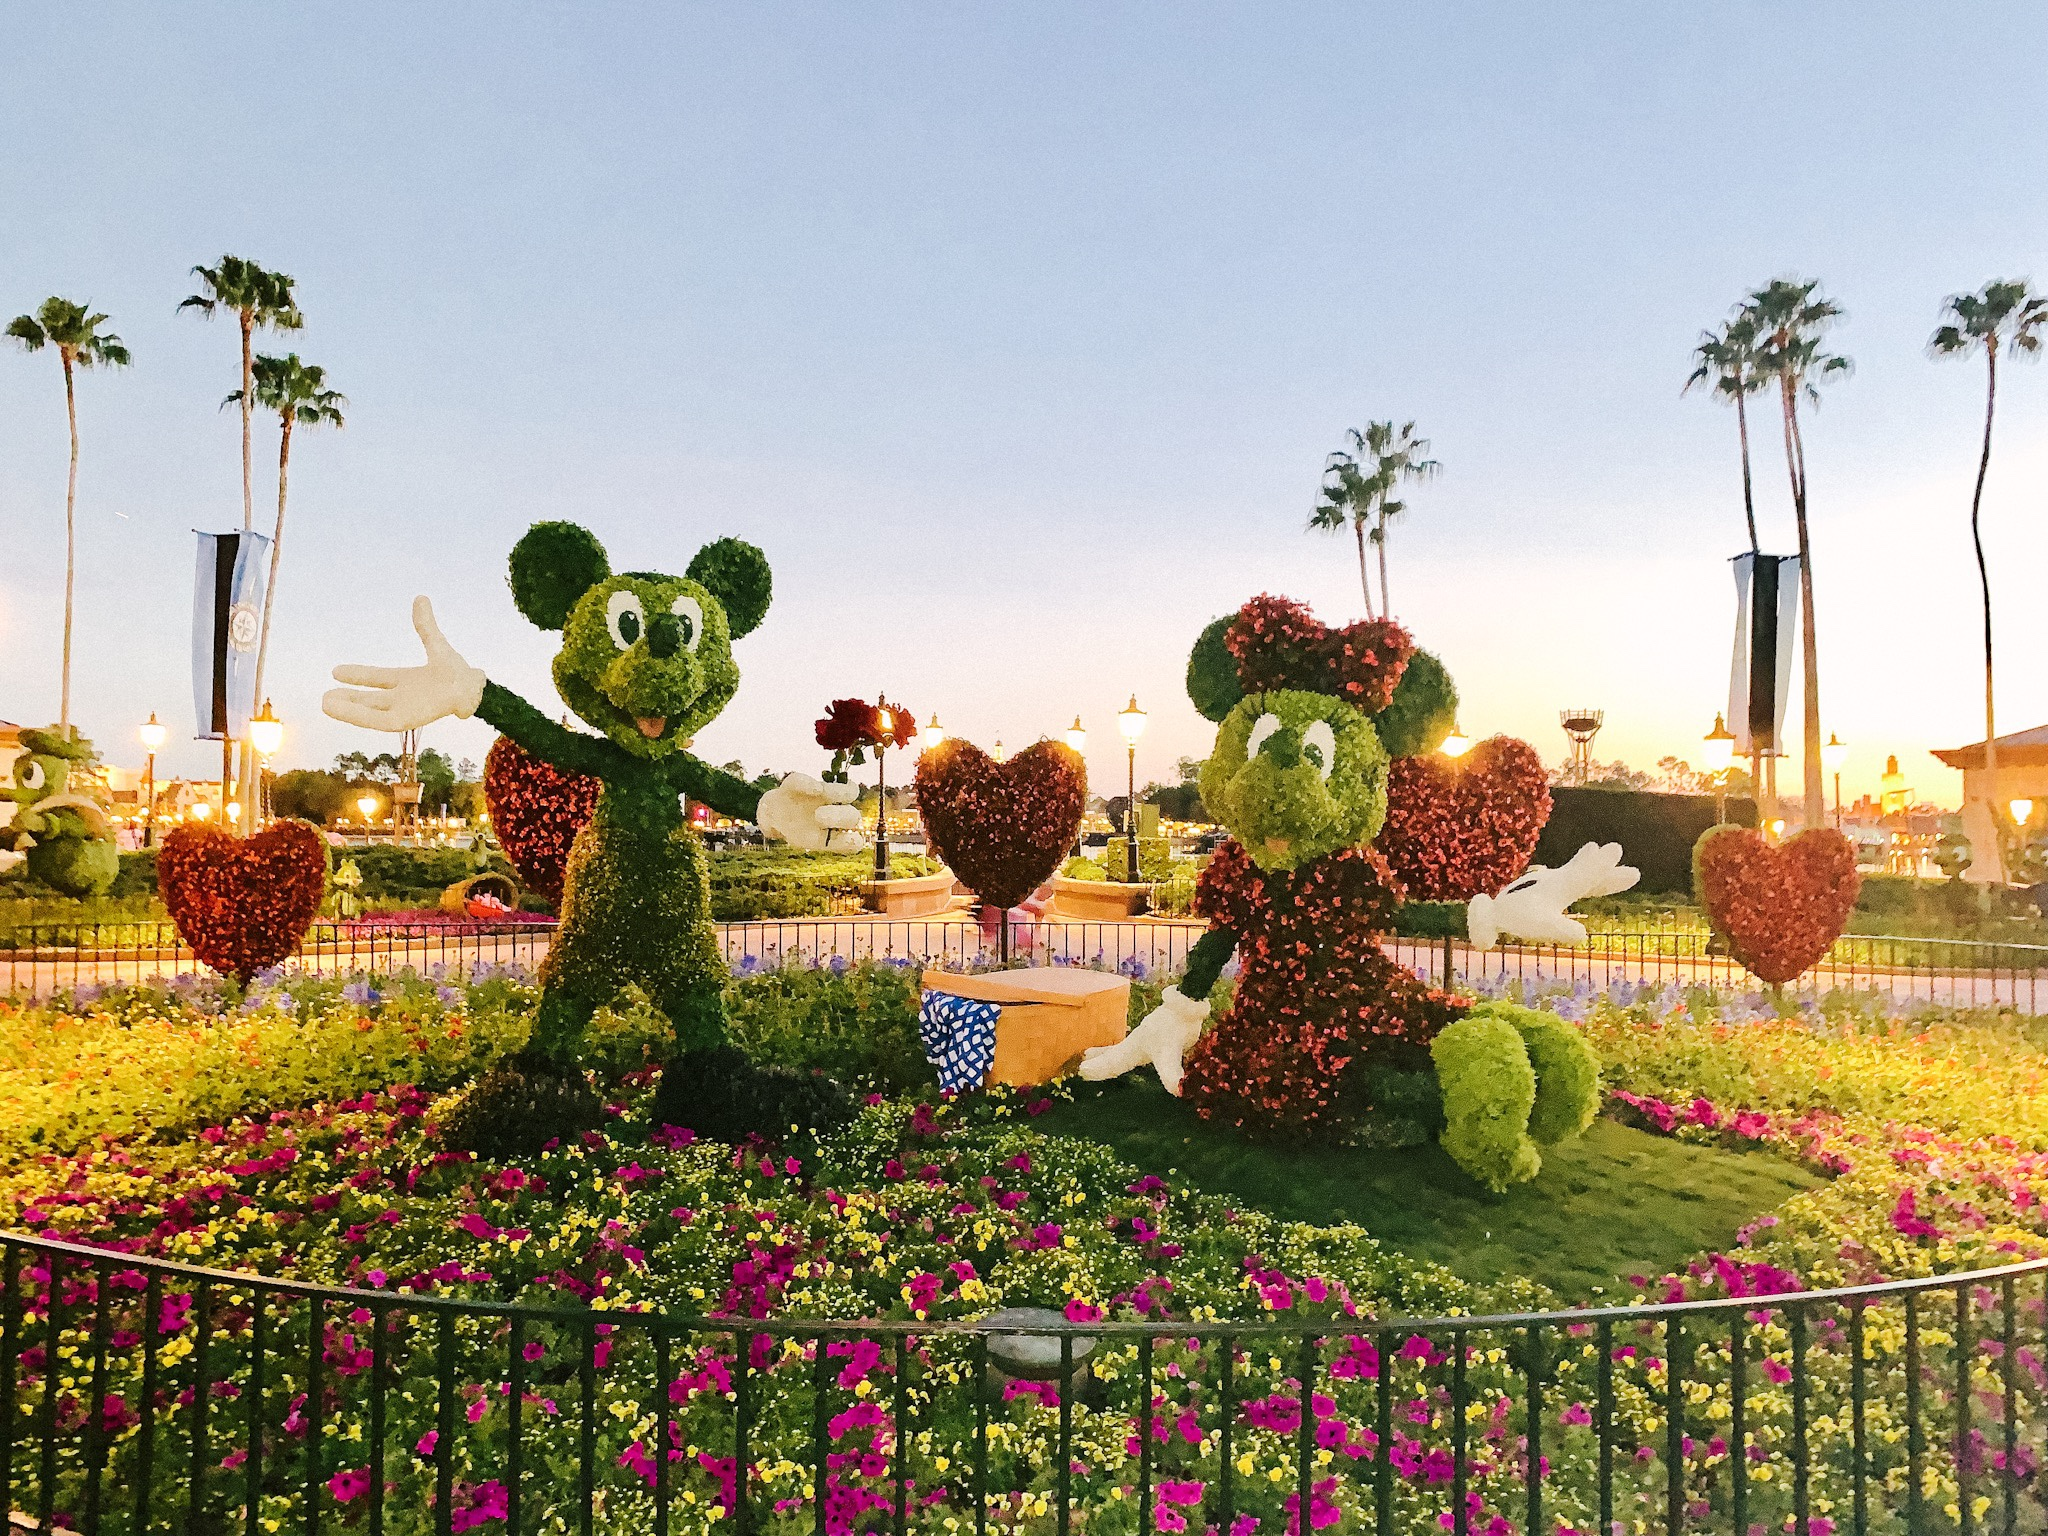 Mickey and Minnie topiary and Epcot Flower and Garden Festival